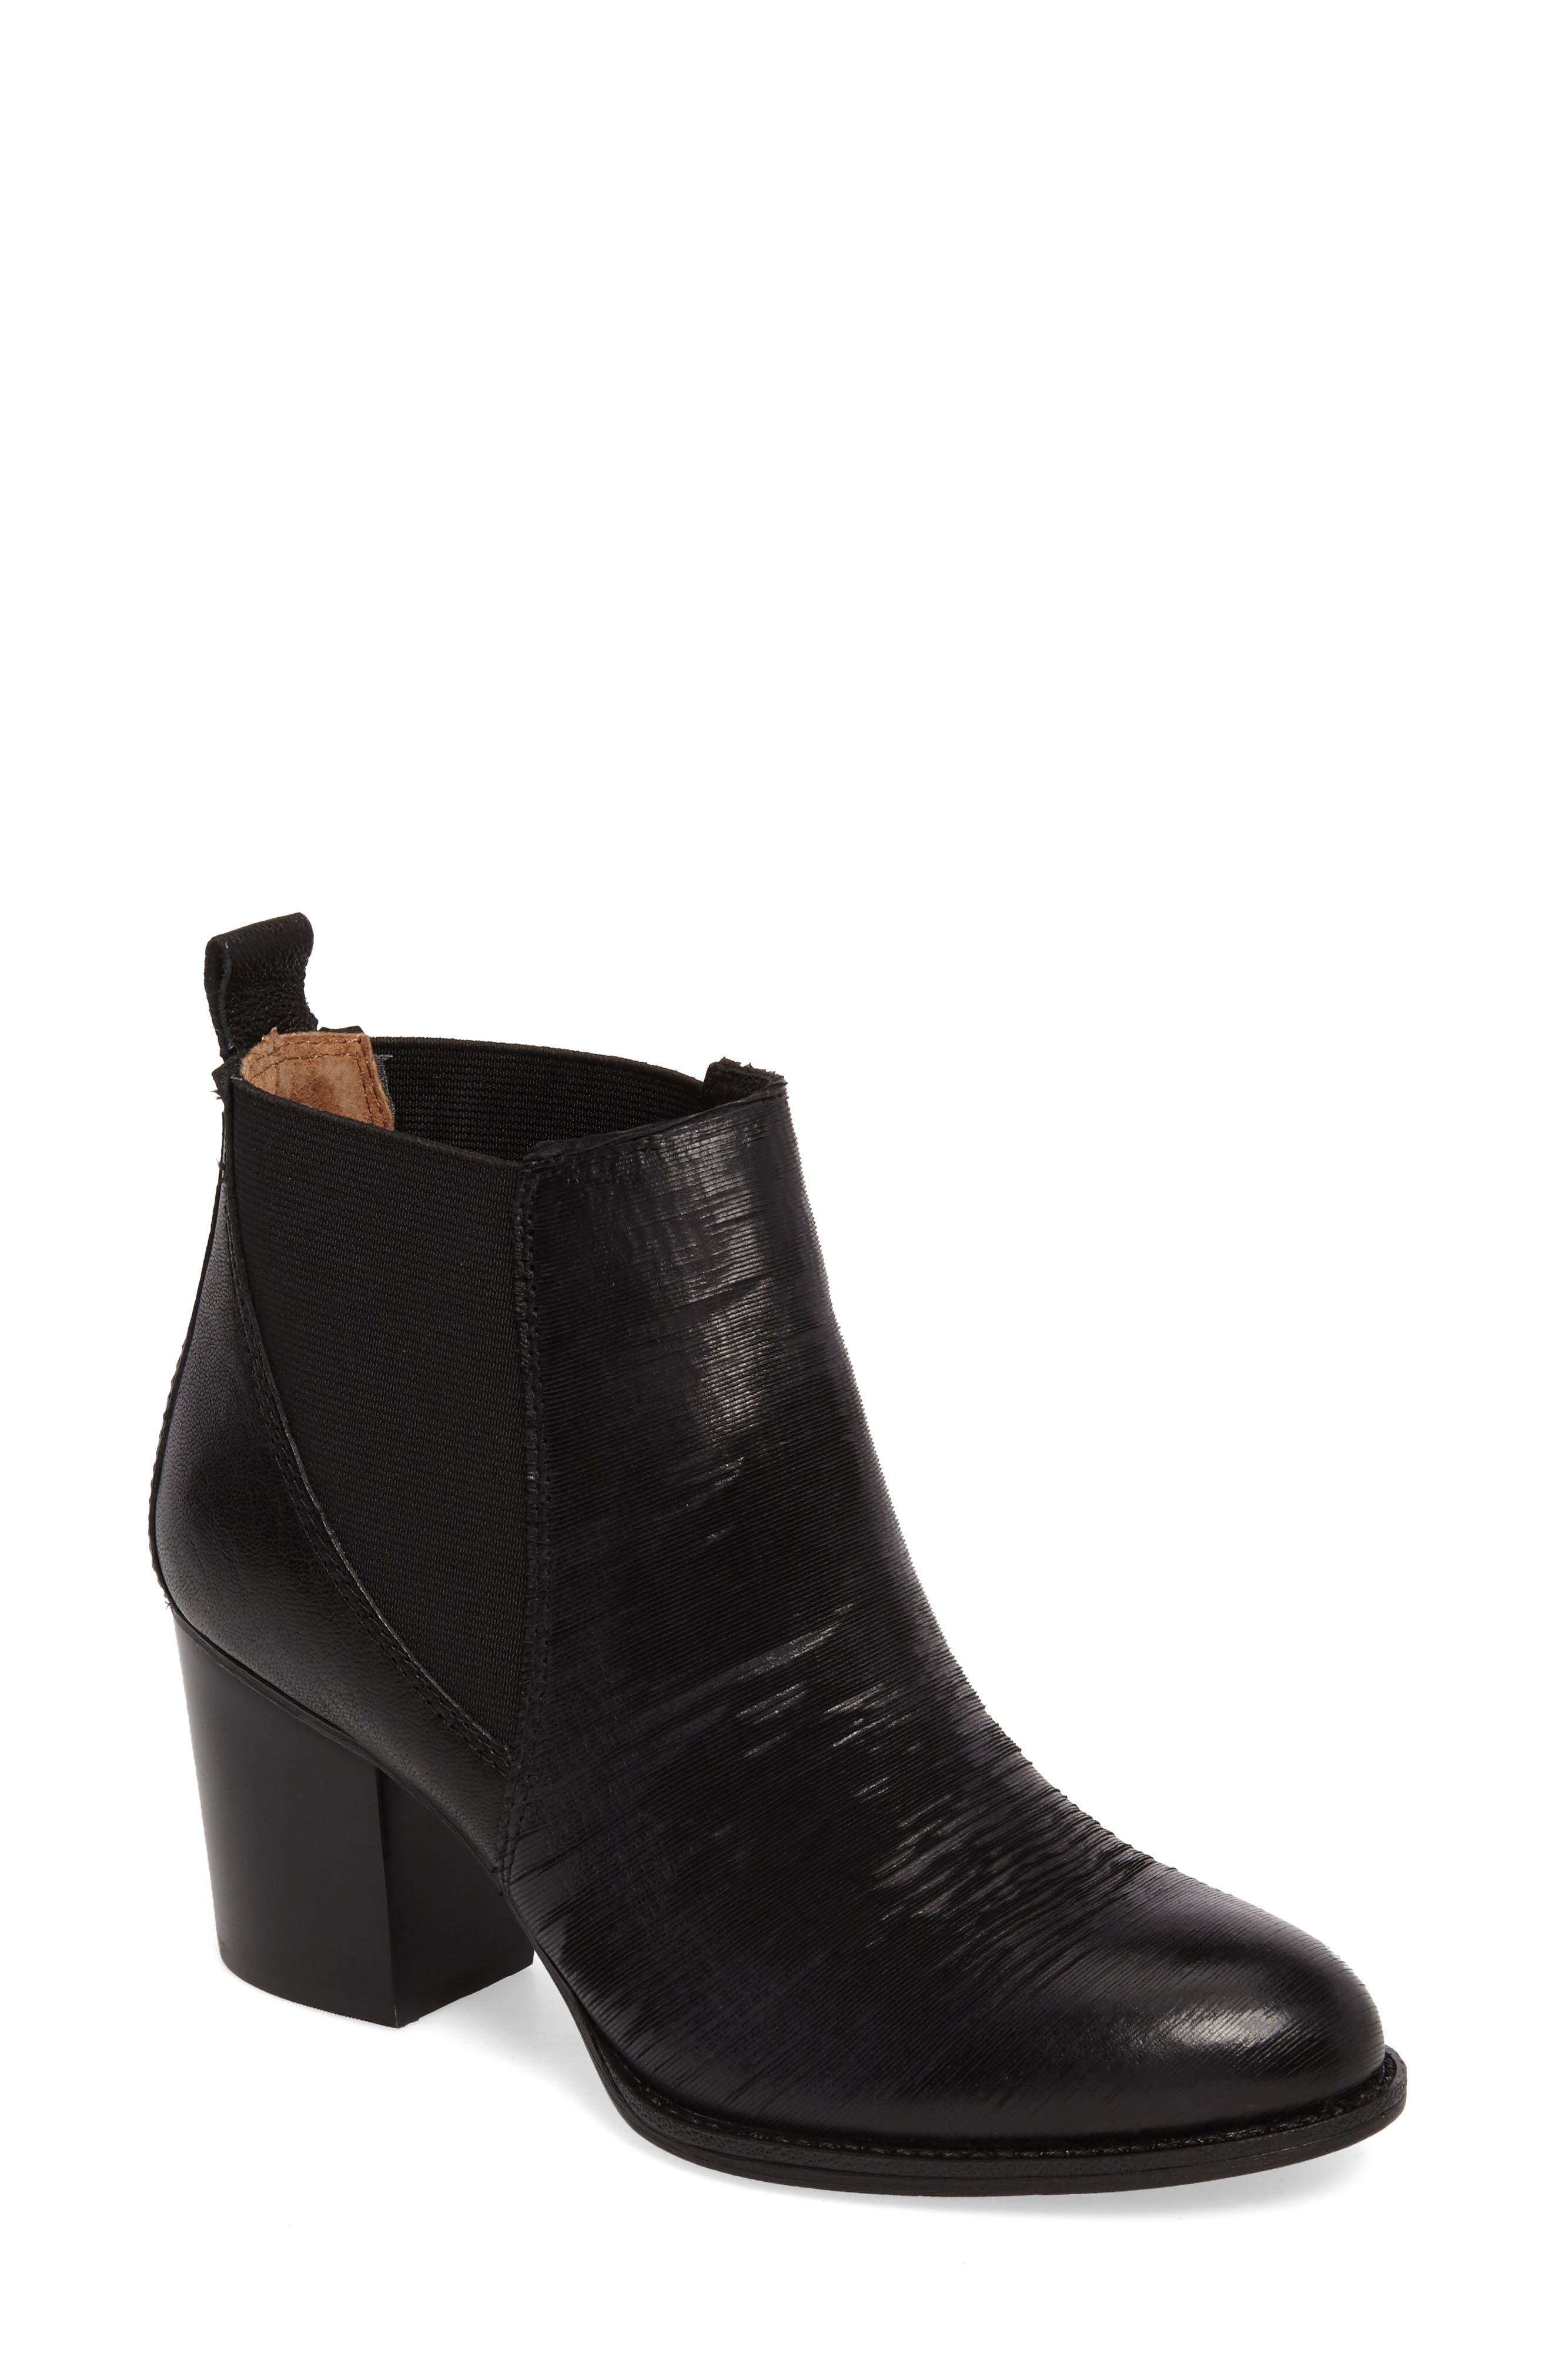 Welling Bootie,                         Main,                         color, Black Leather